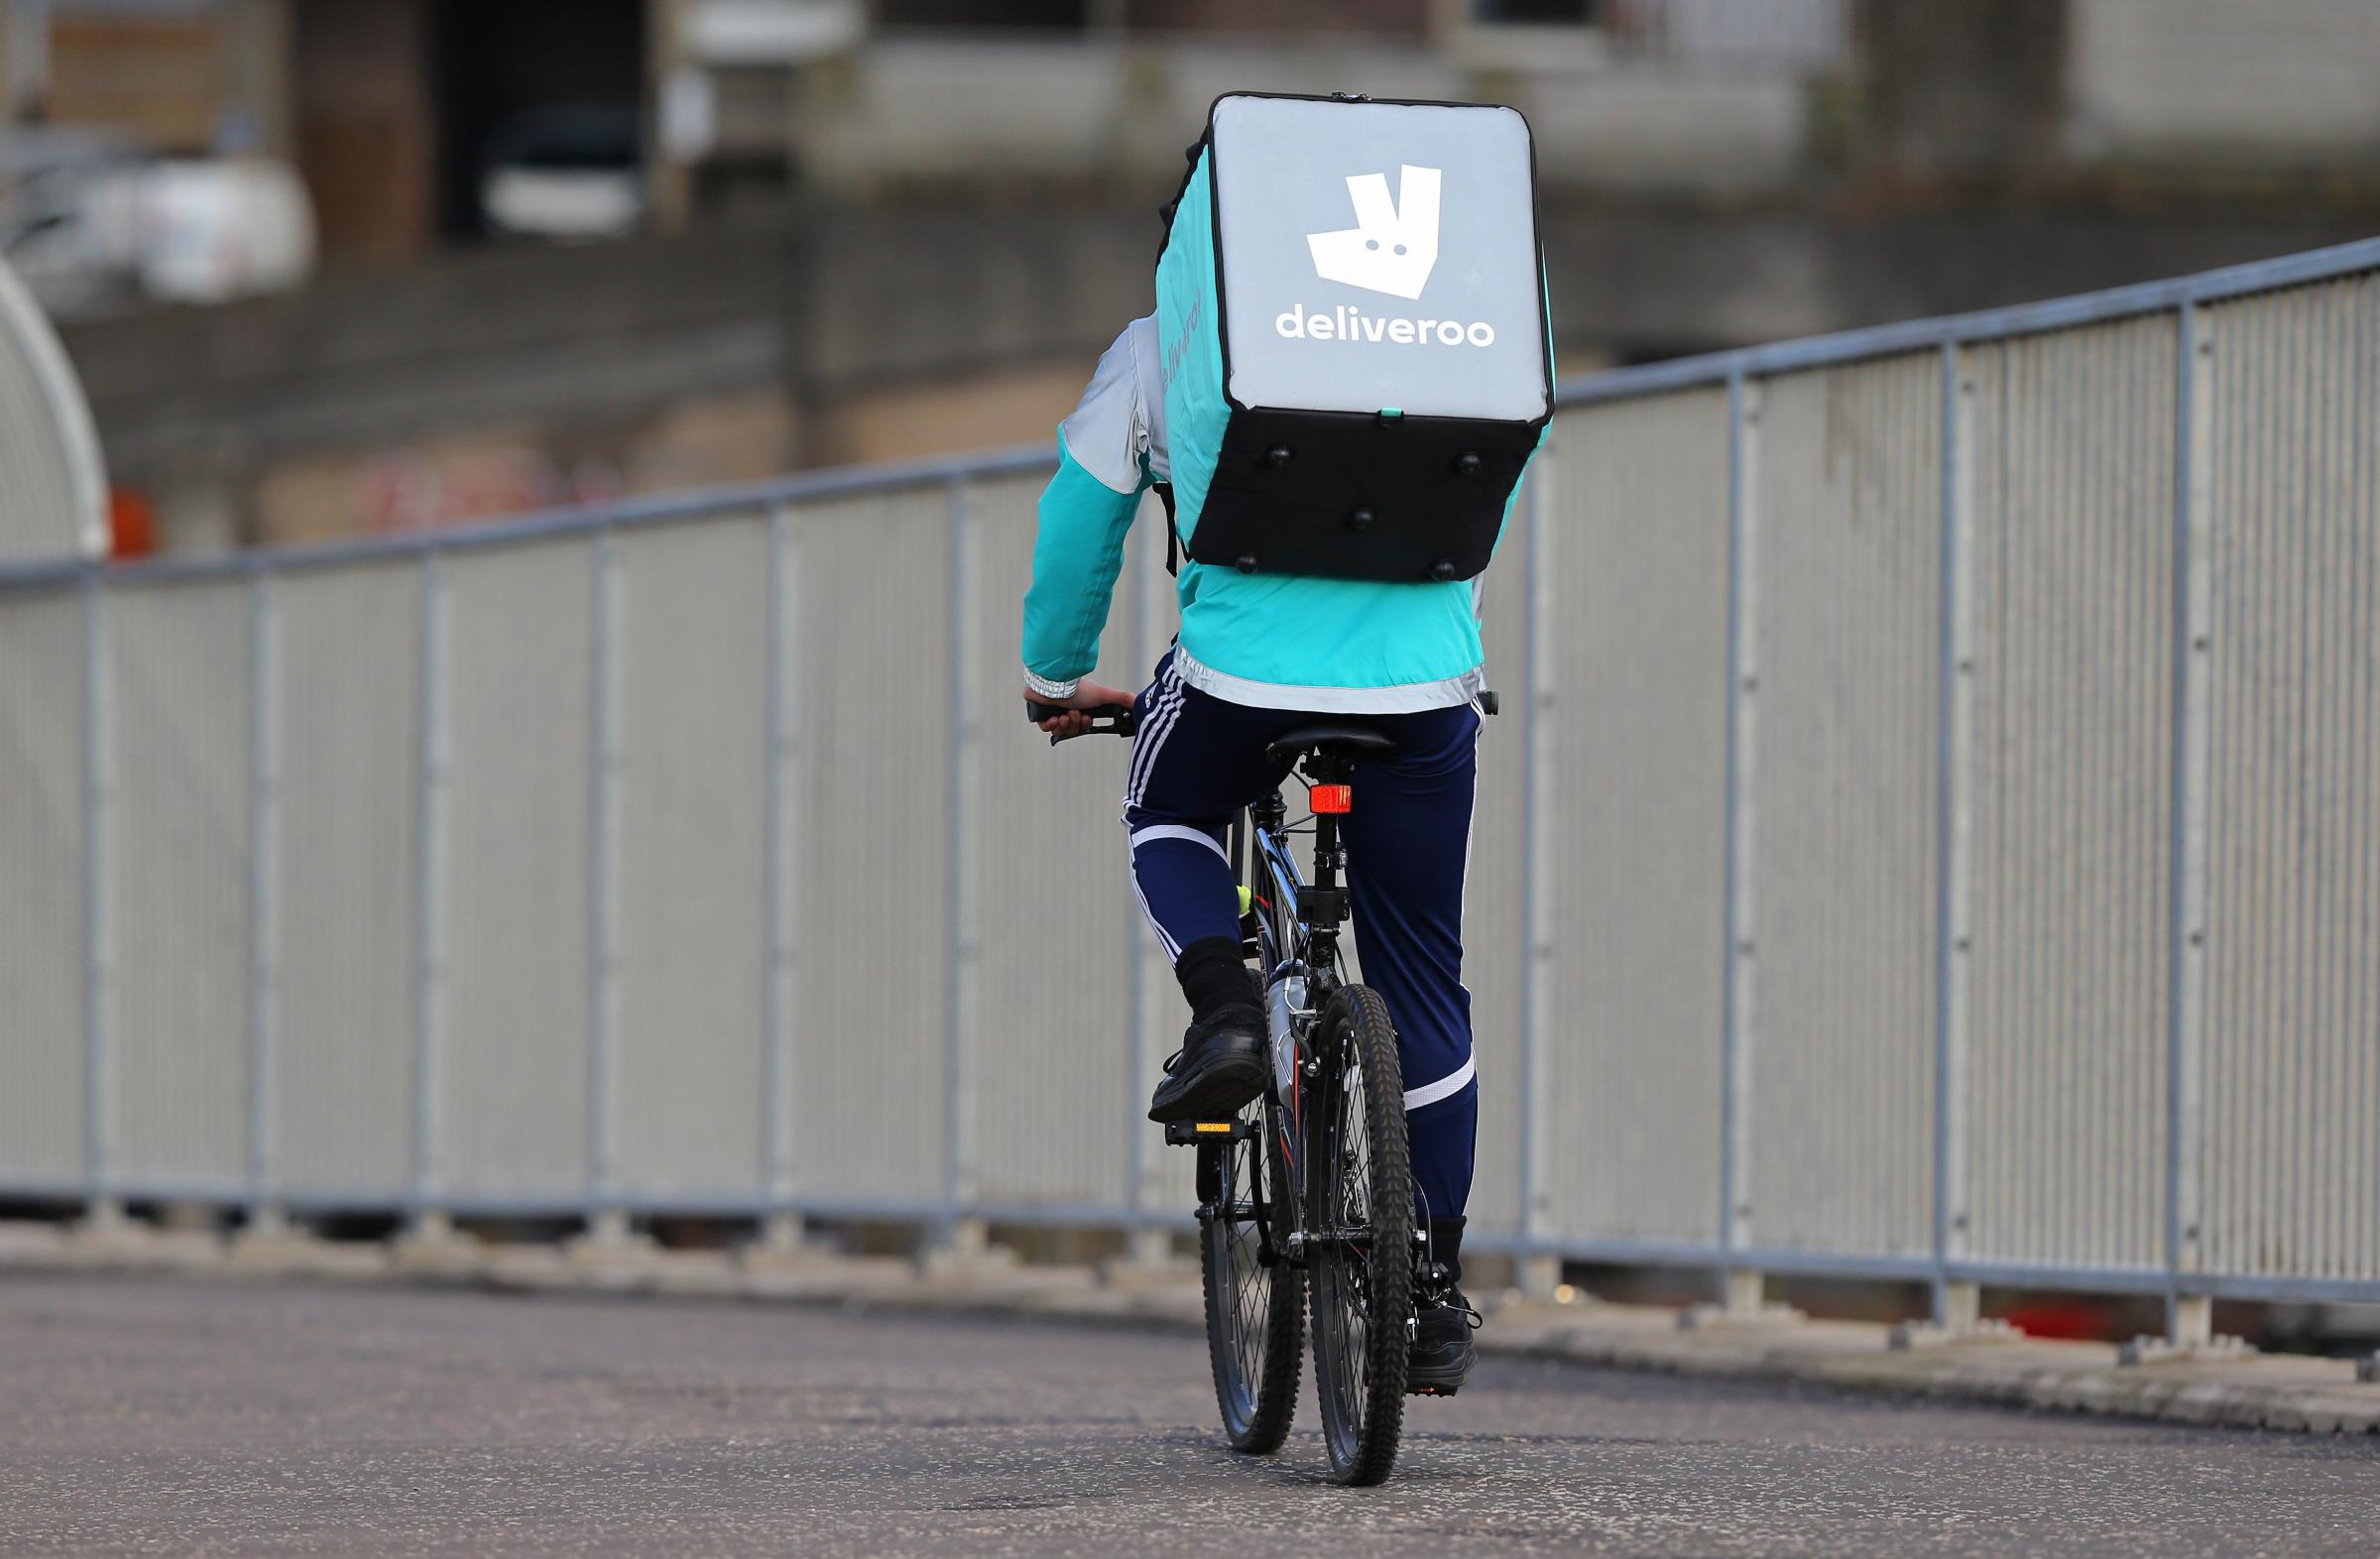 Deliveroo in plans to open takeaway kitchen hub in Tradeston